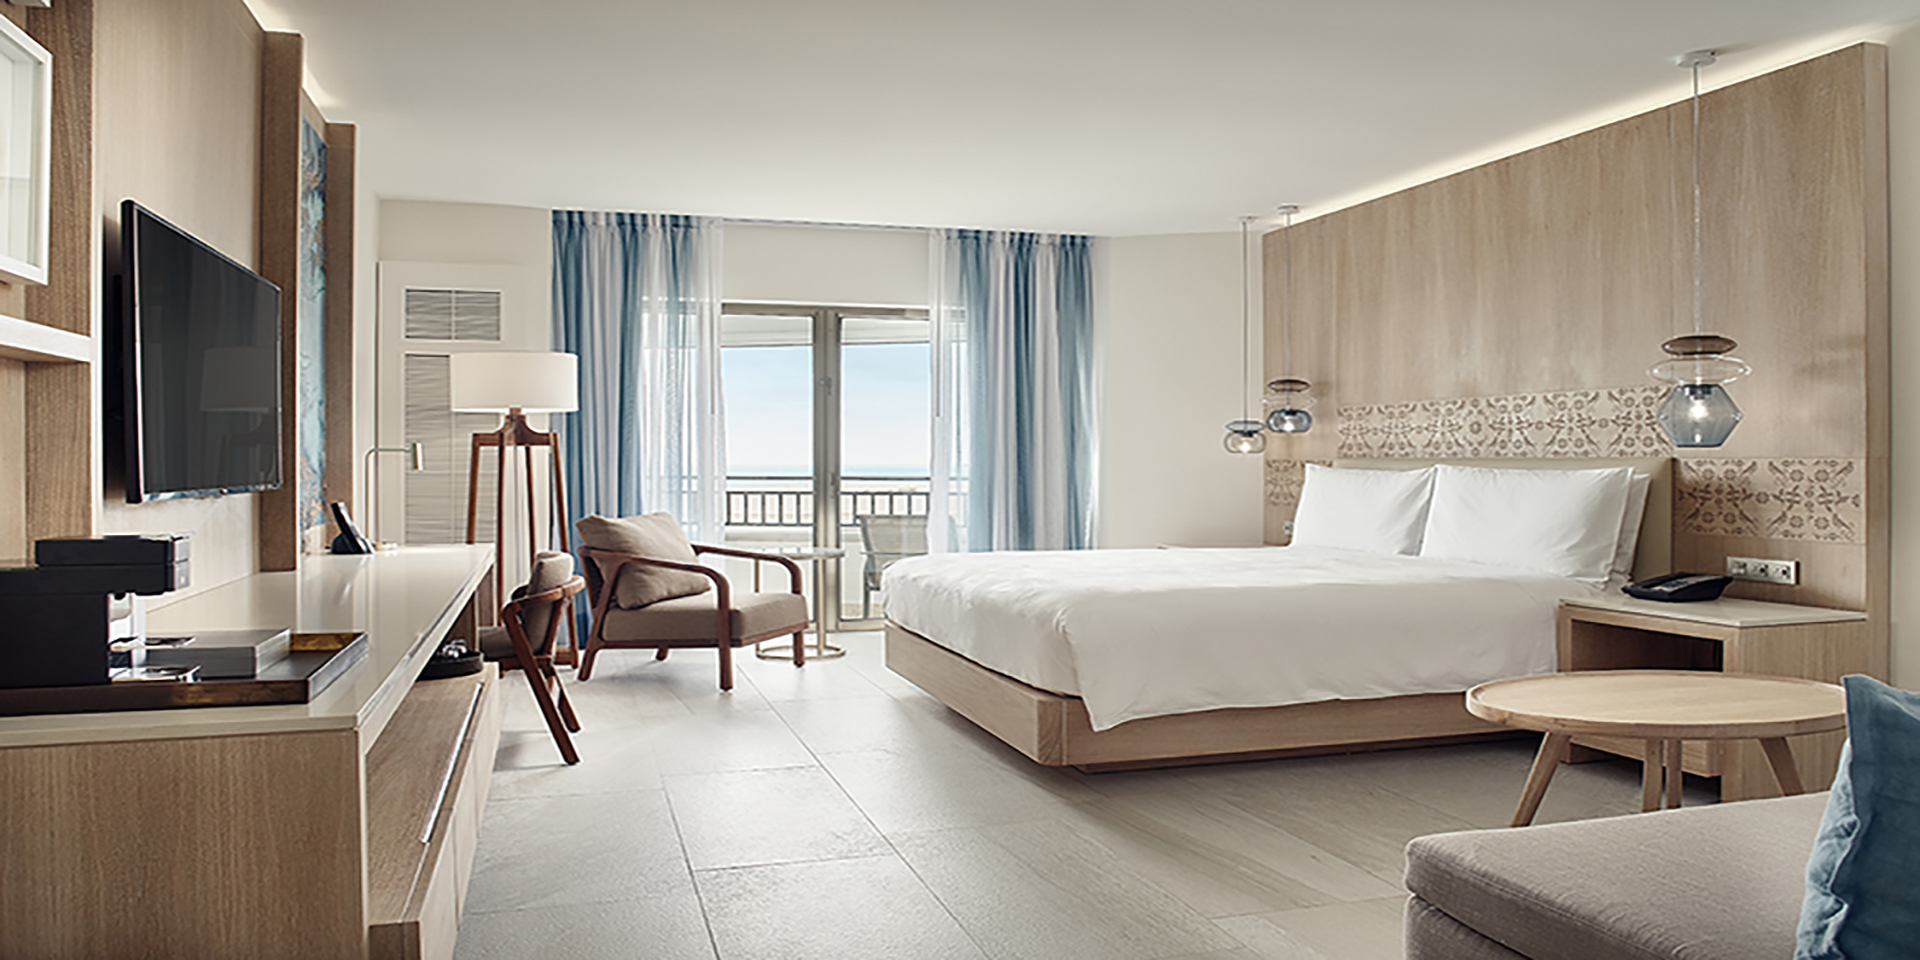 JW Marriott Cancun, newly renovated rooms